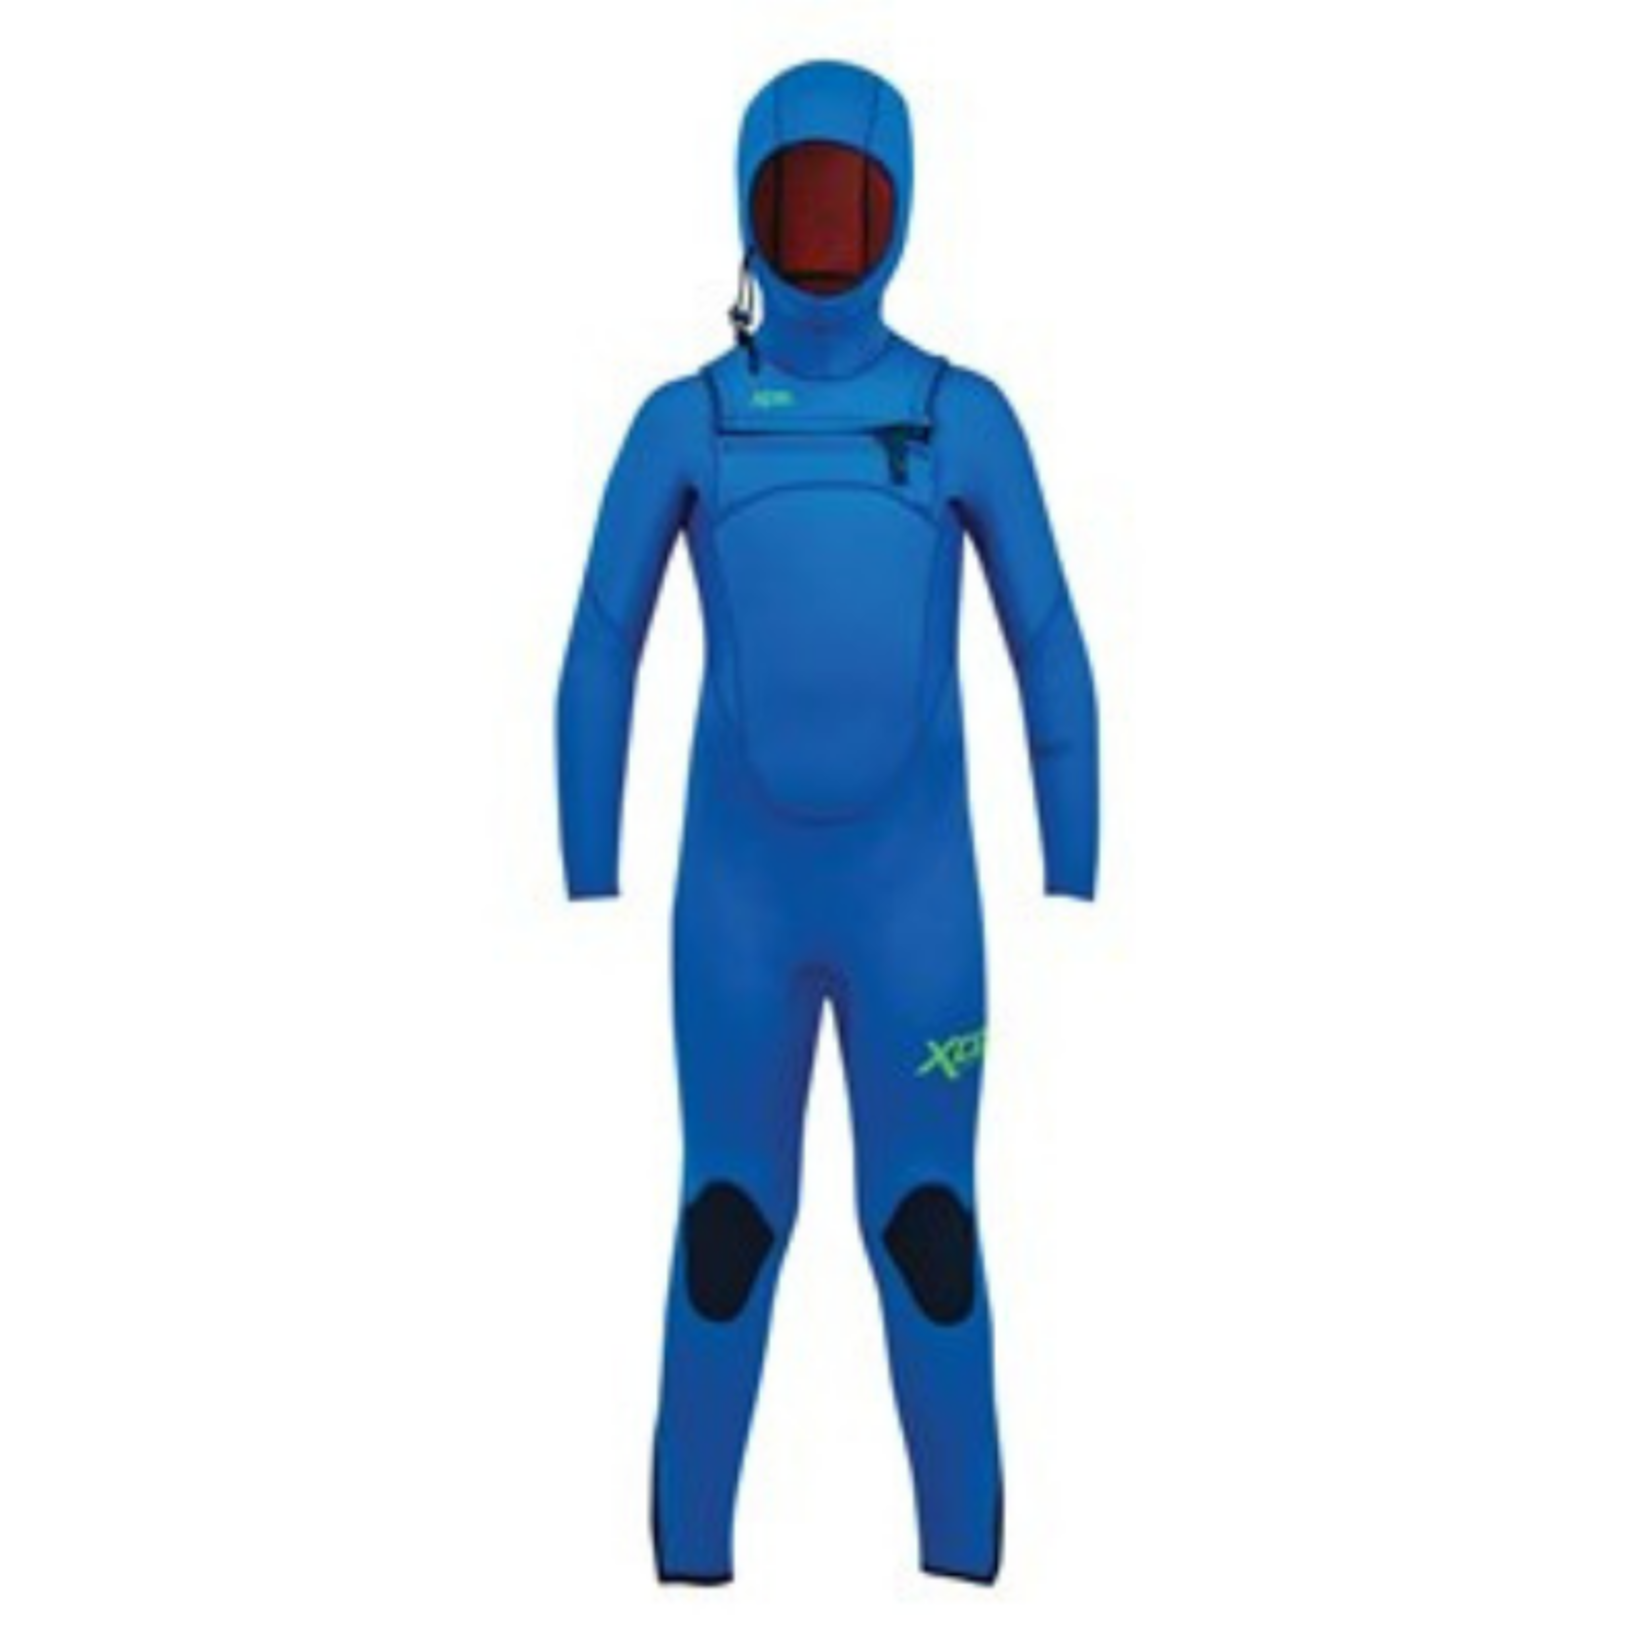 XCEL XCEL Small Youth Comp 4.5/3.5mm Hooded Wetsuit.